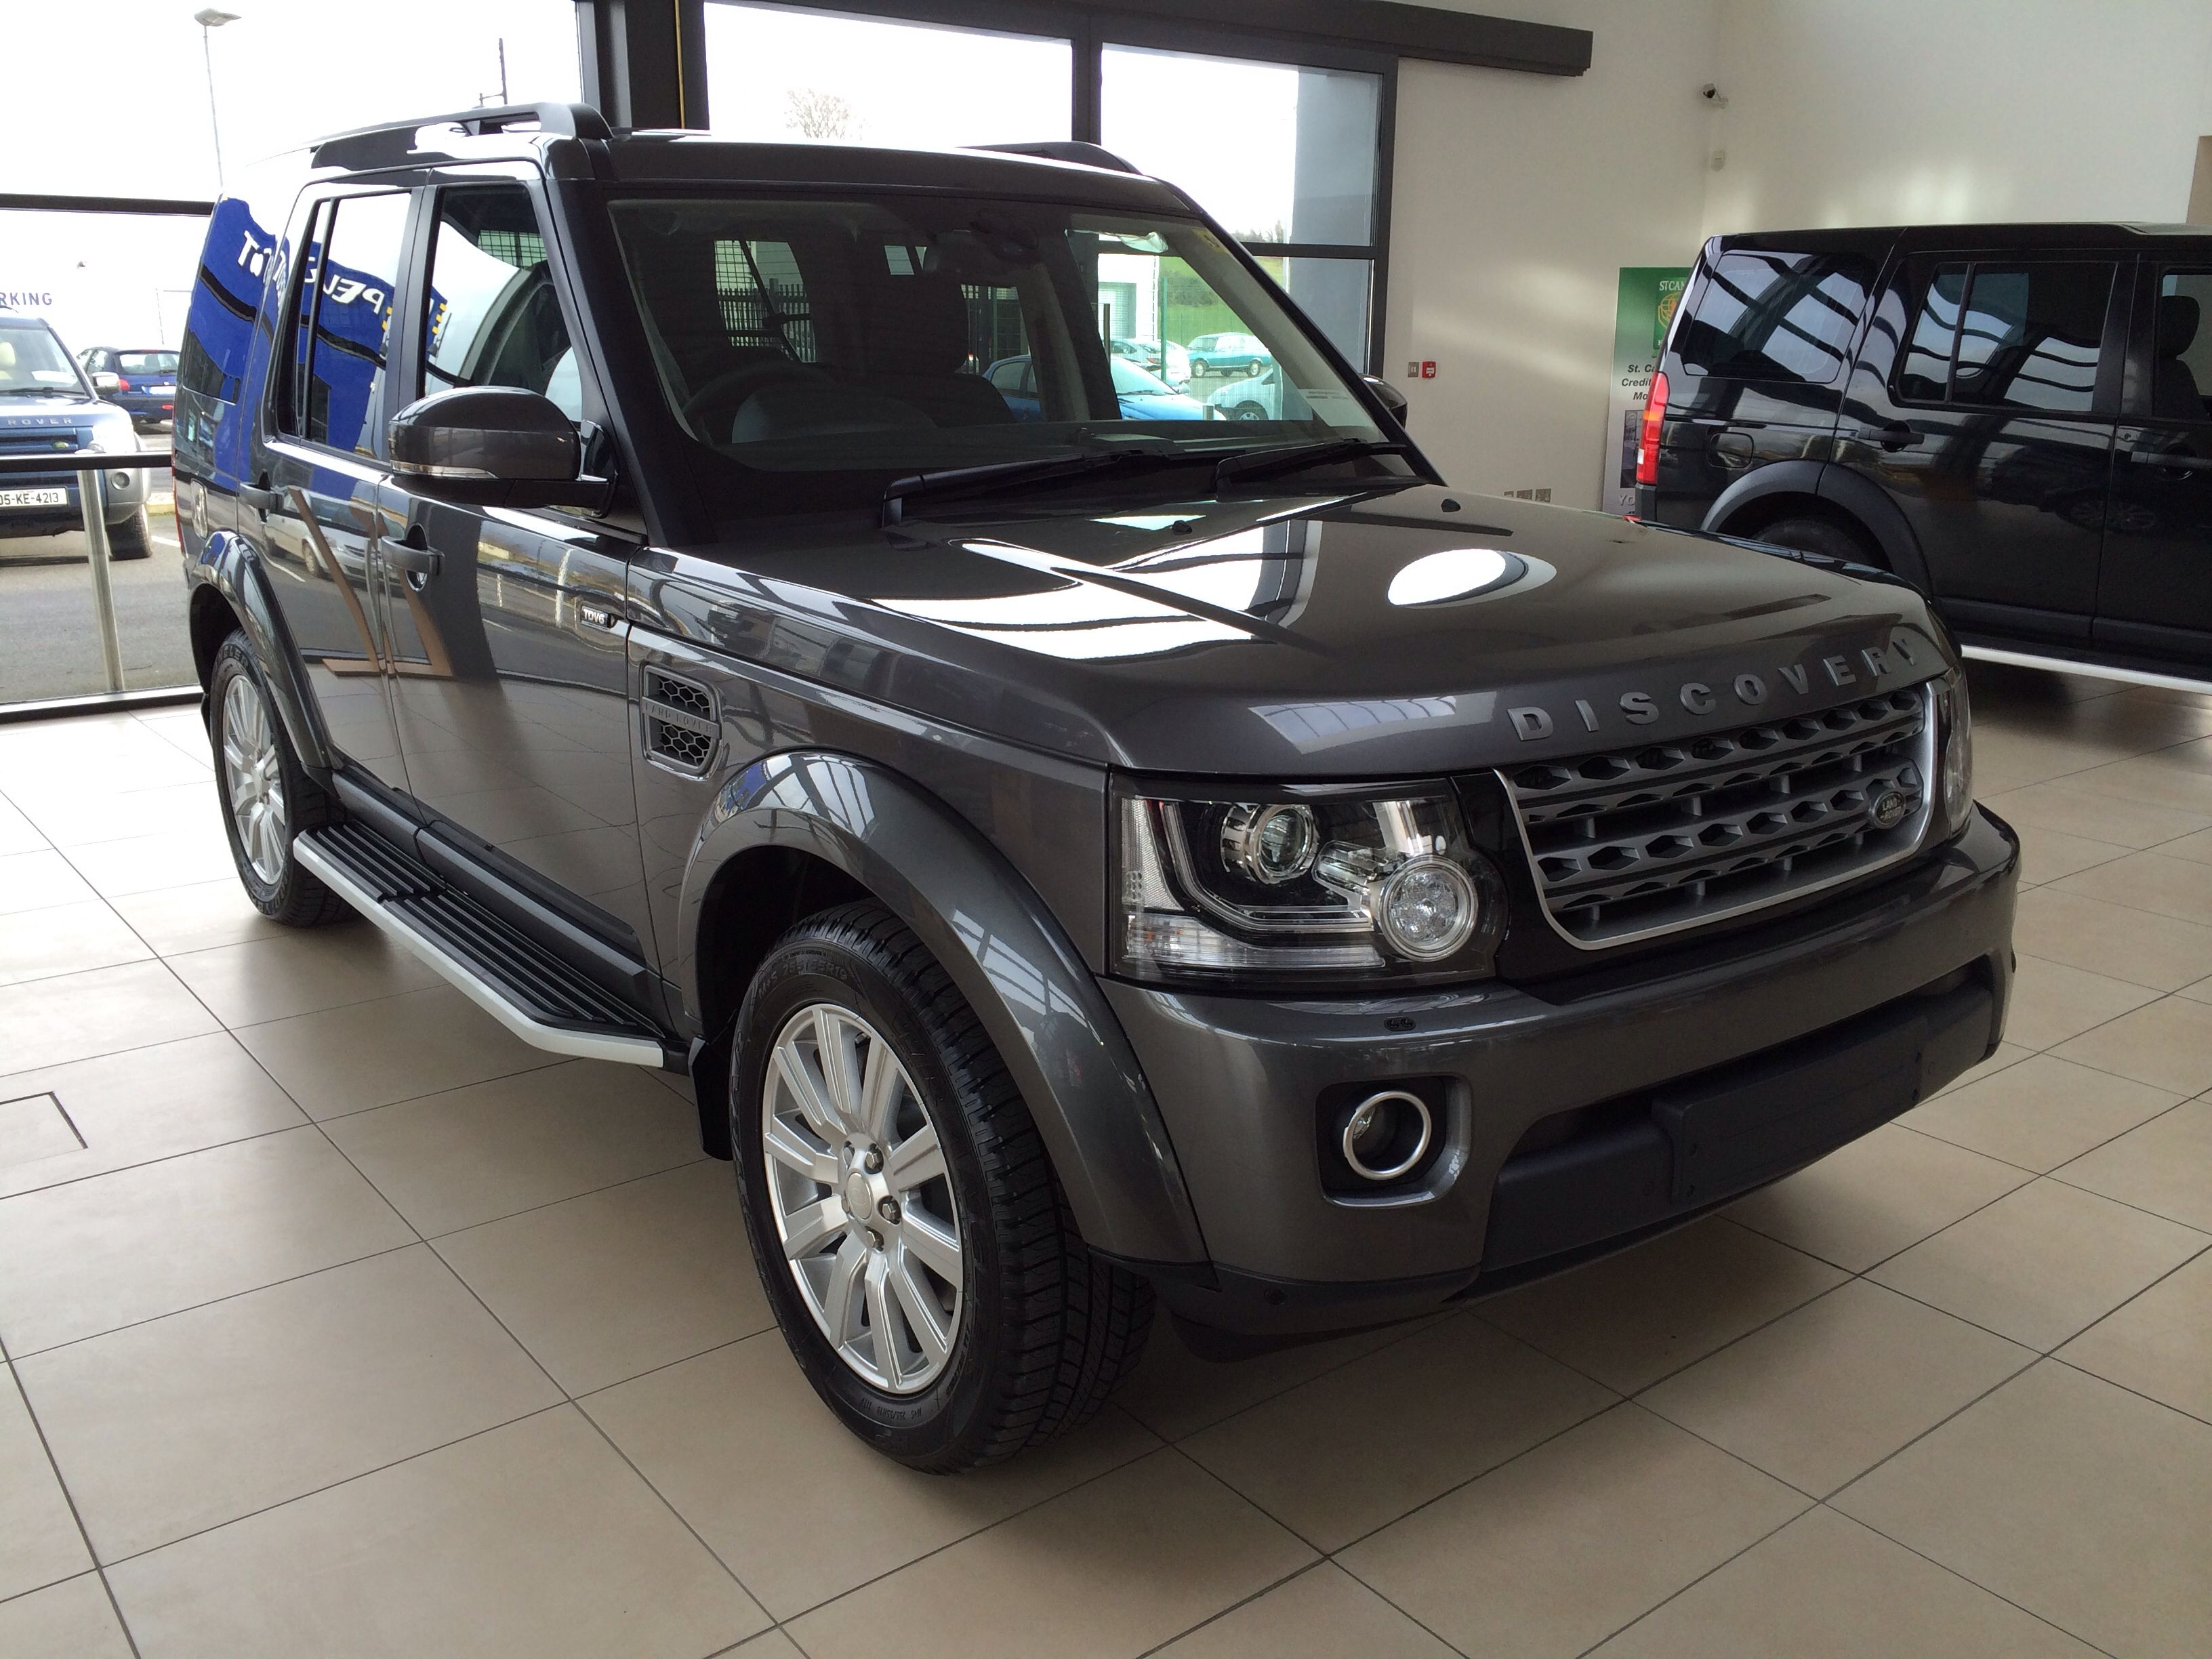 forums lux sale attachment for system automobiles size landrover camera all name hd views version rare surround options package img rover larger click image hse land